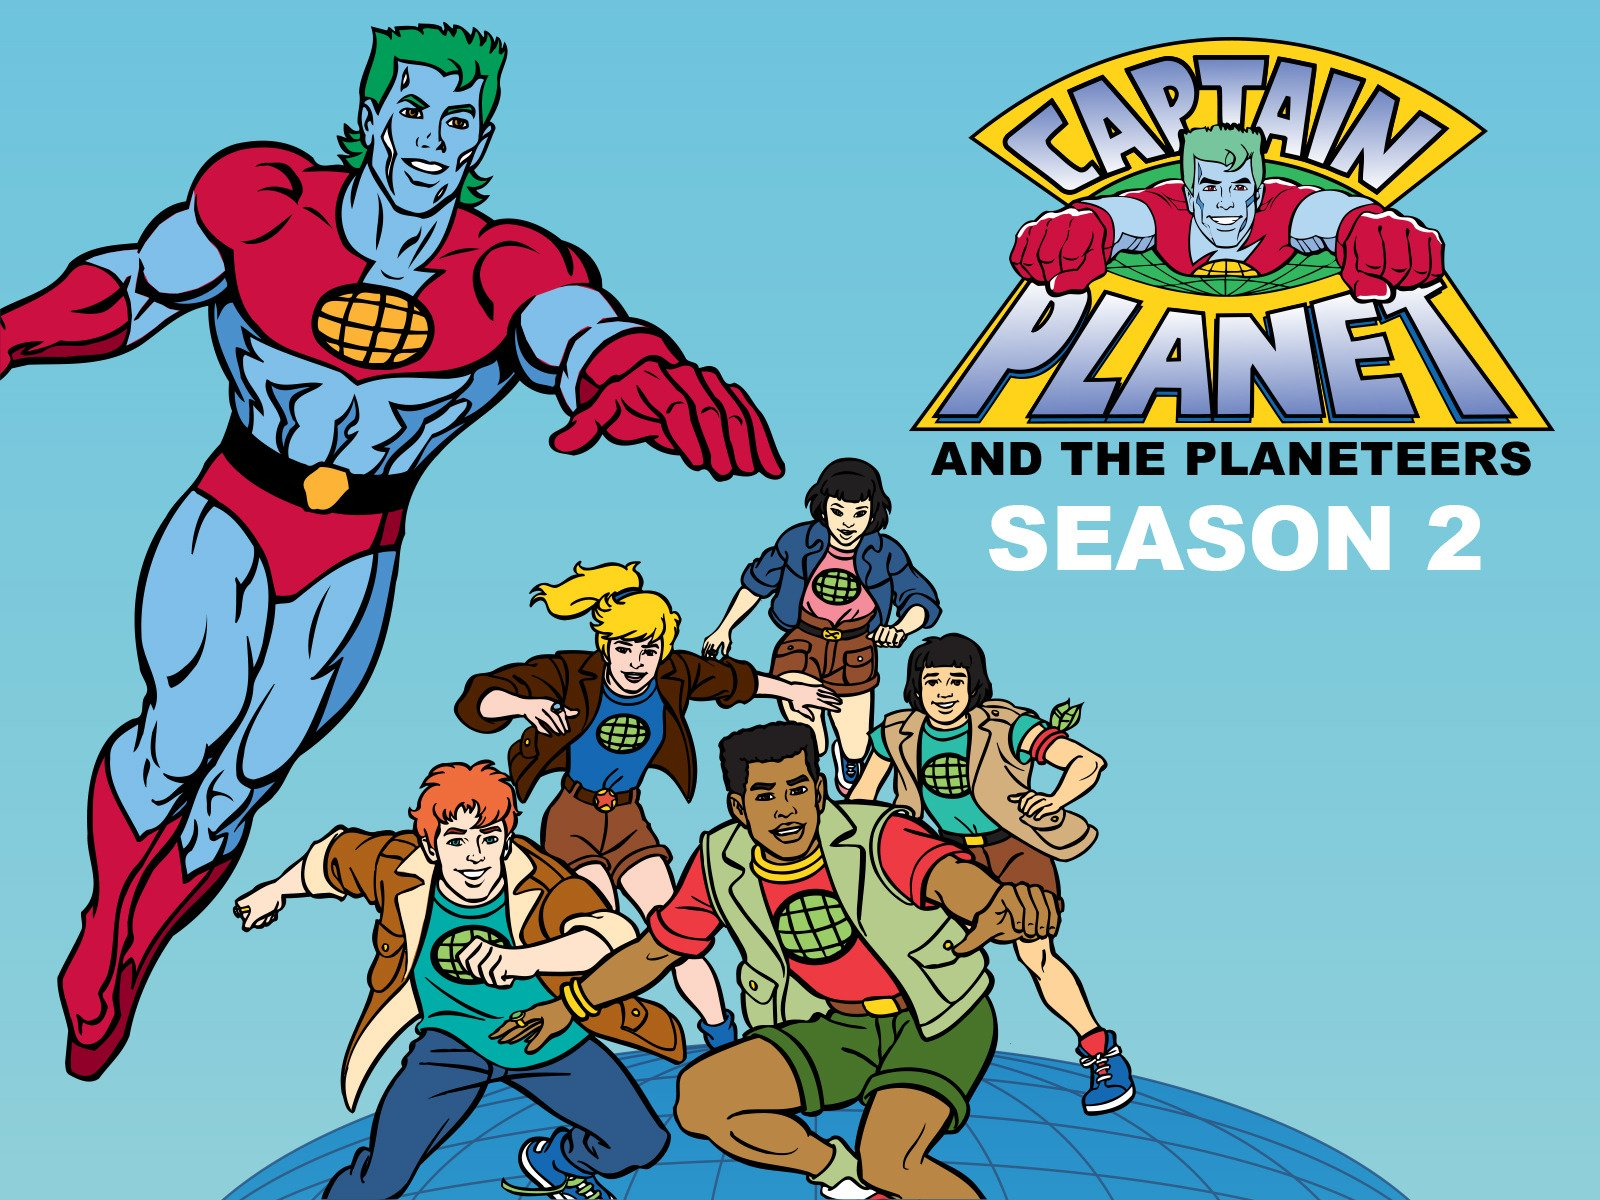 Amazoncom Watch Captain Planet and the Planeteers Season 2 1600x1200